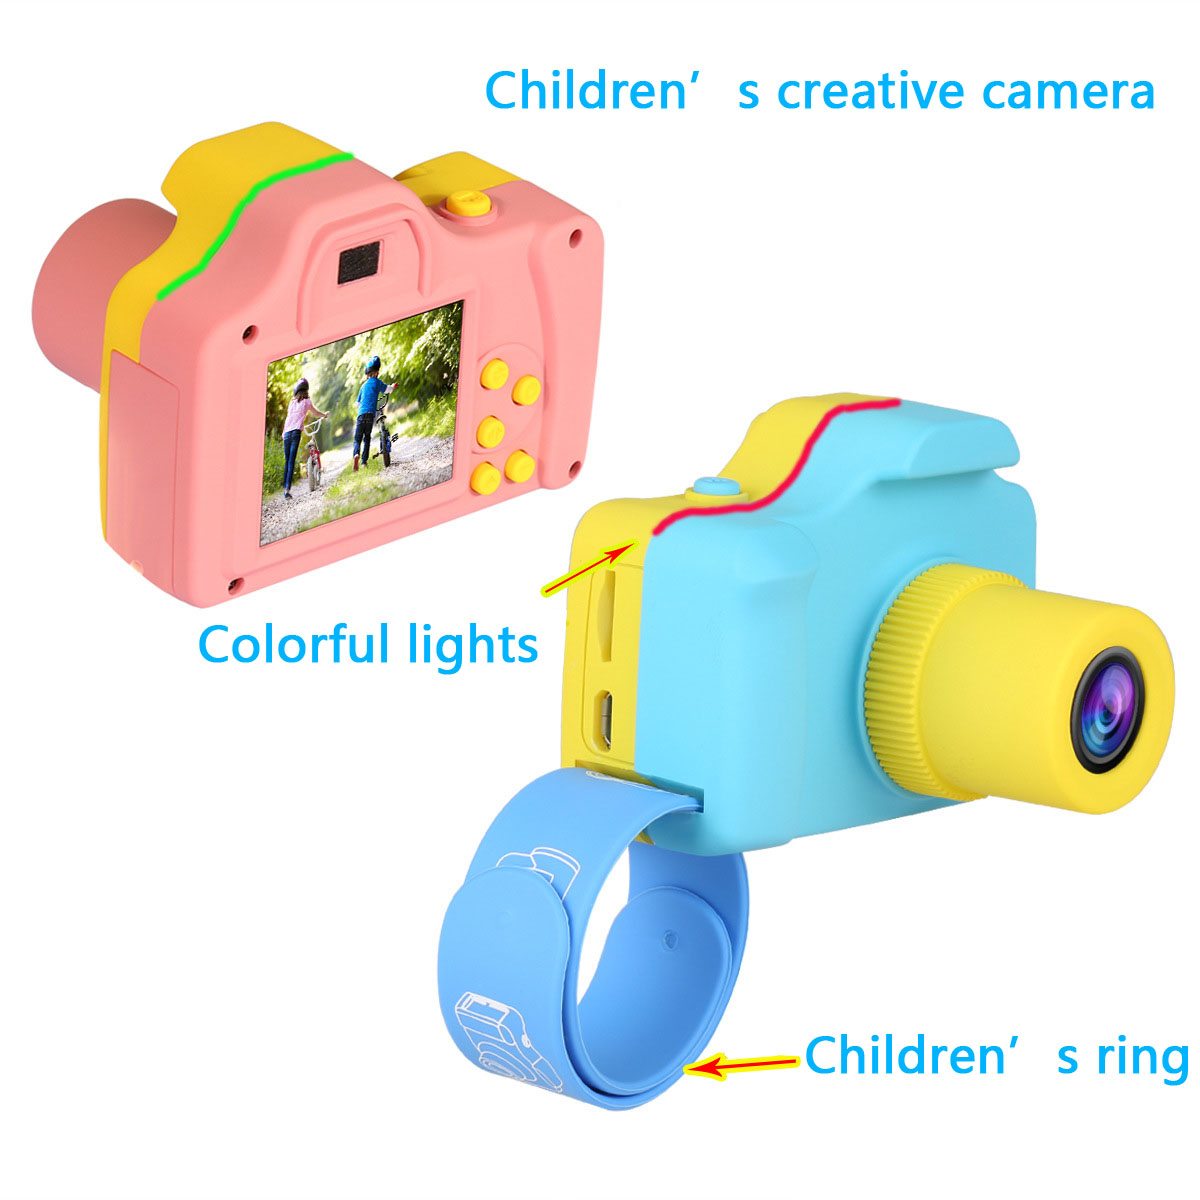 MECO 1.77inch 720P Kids Mini Portable Creativity Digital Photography Handheld HD Photo Camera VCR for Children Gift